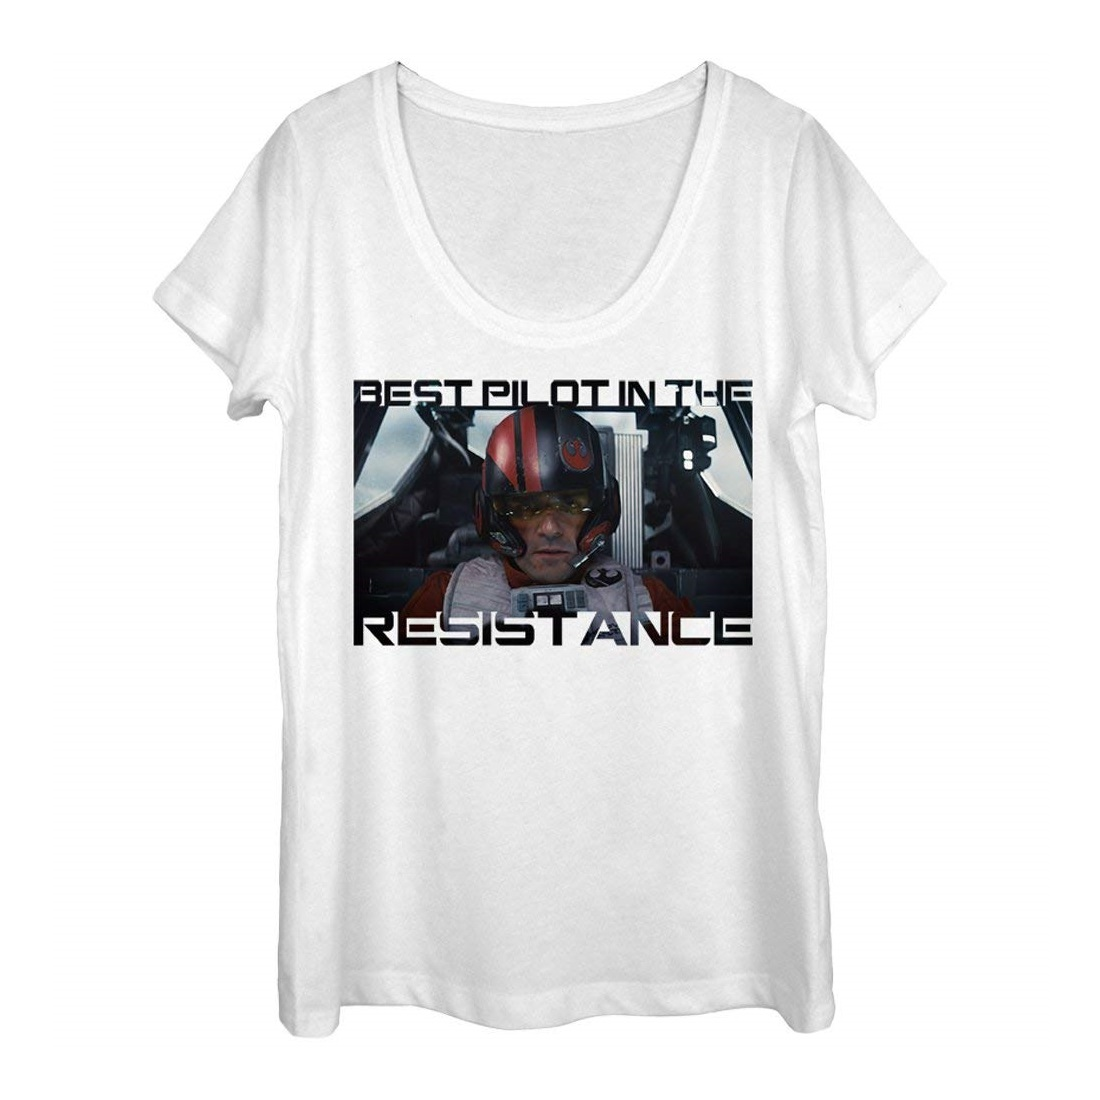 Leia's List - Women's Star Wars Poe Dameron T-Shirt by Fifth Sun available on Amazon